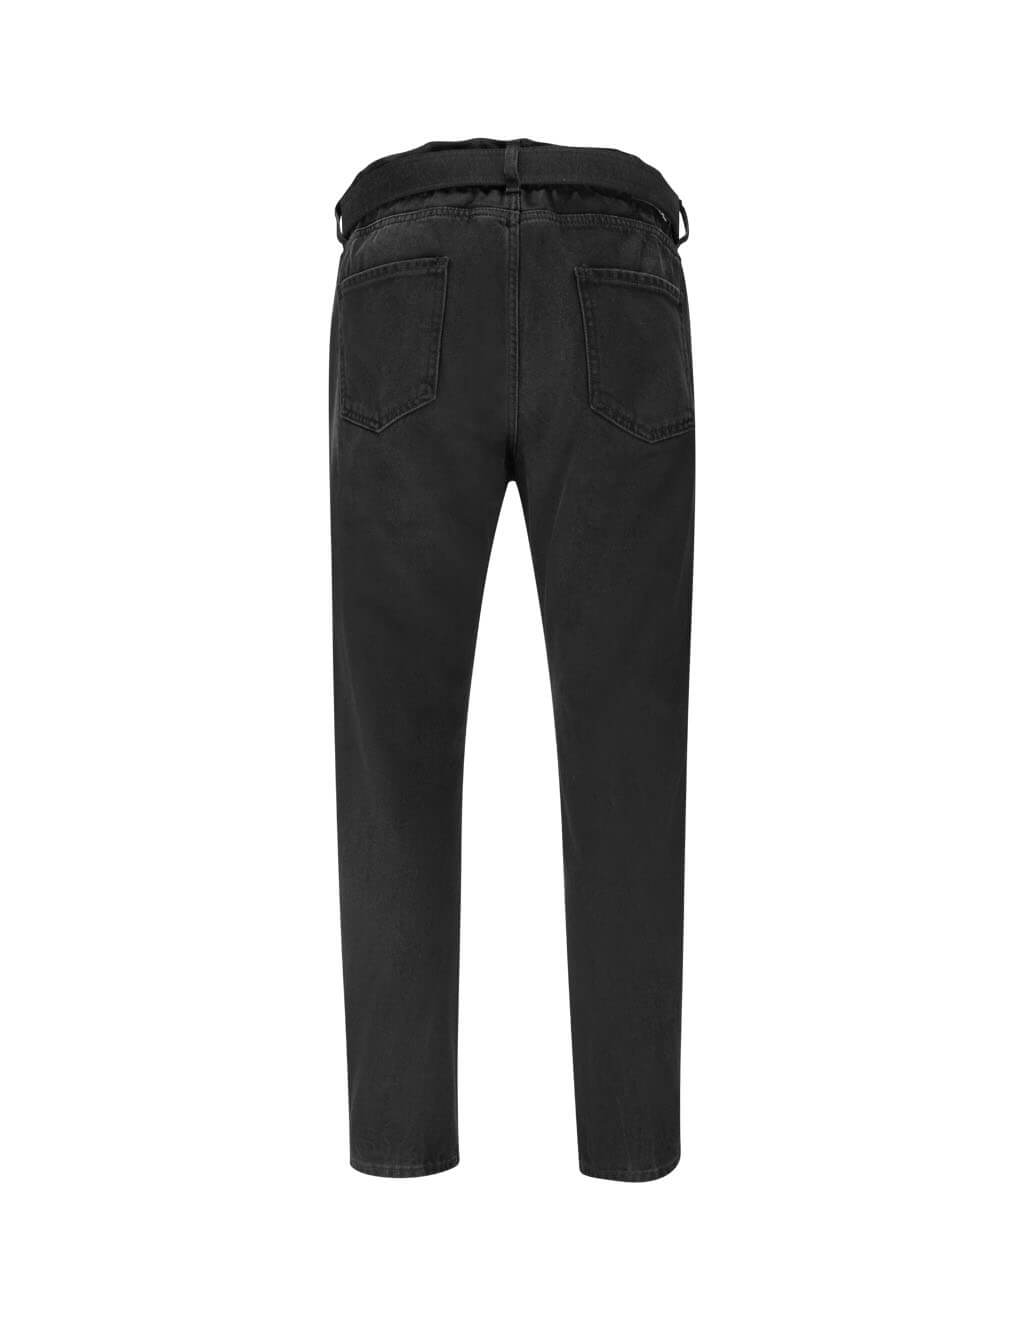 Off-White Men's Black Slim Low Crotch Jeans OMYA005R20E540271010